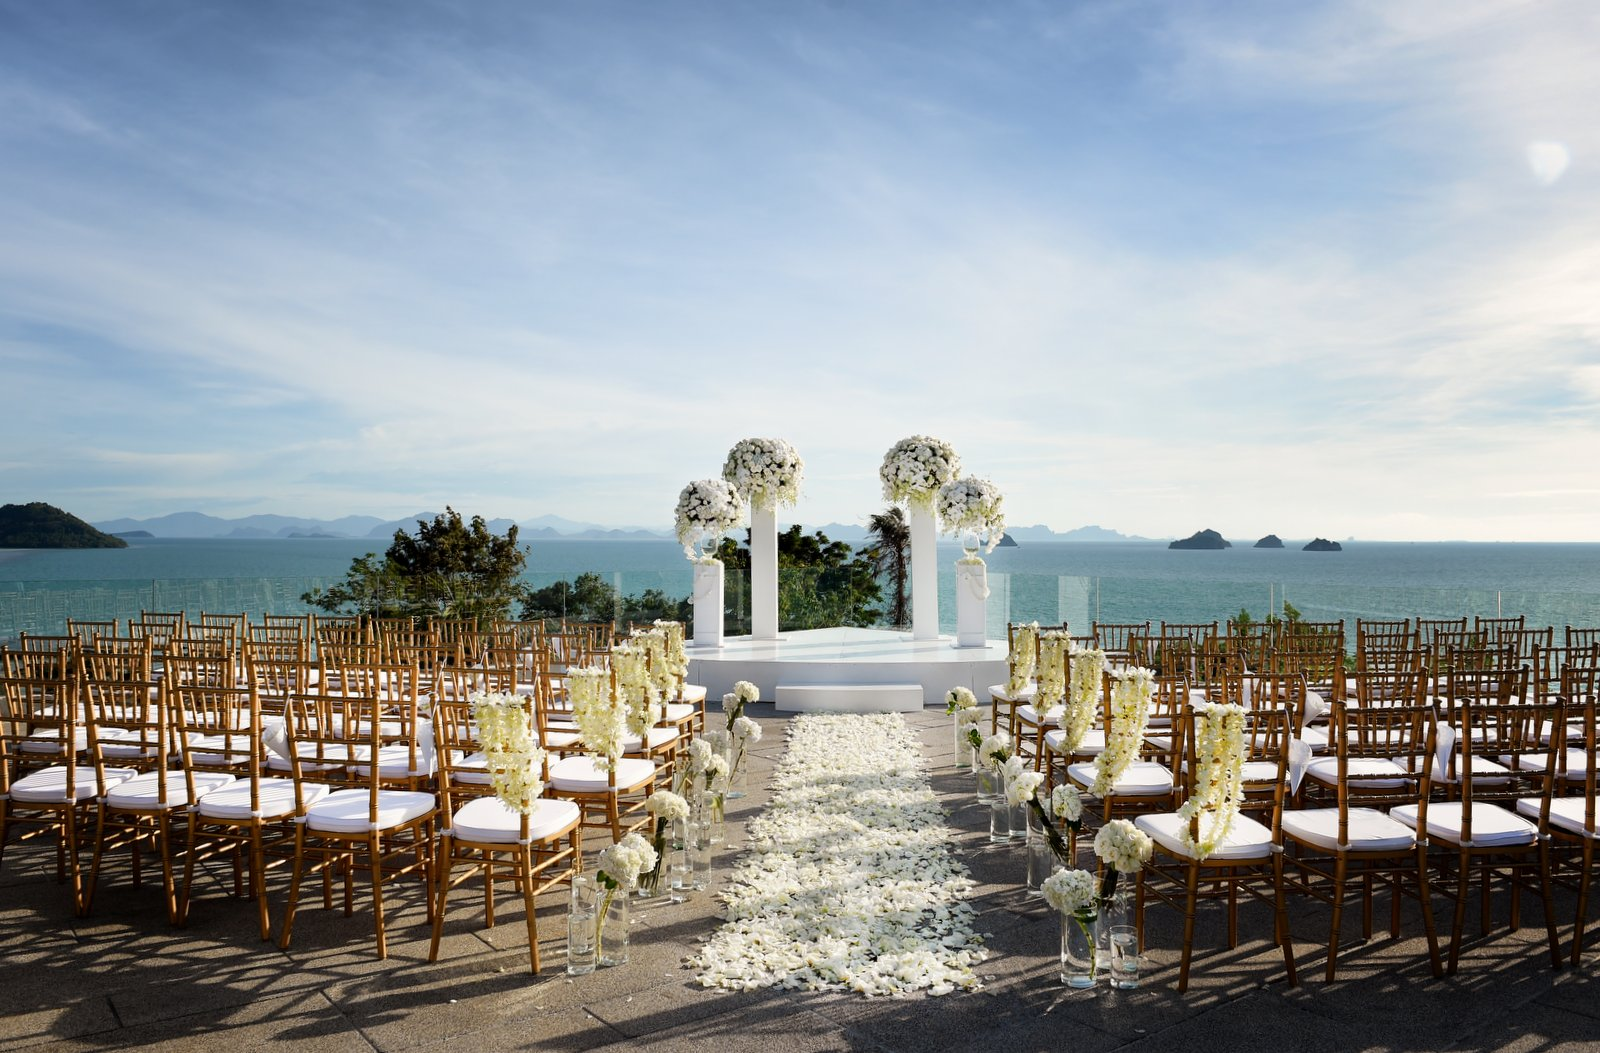 Perfect ocean view wedding ceremony setting on Samui, Thailand